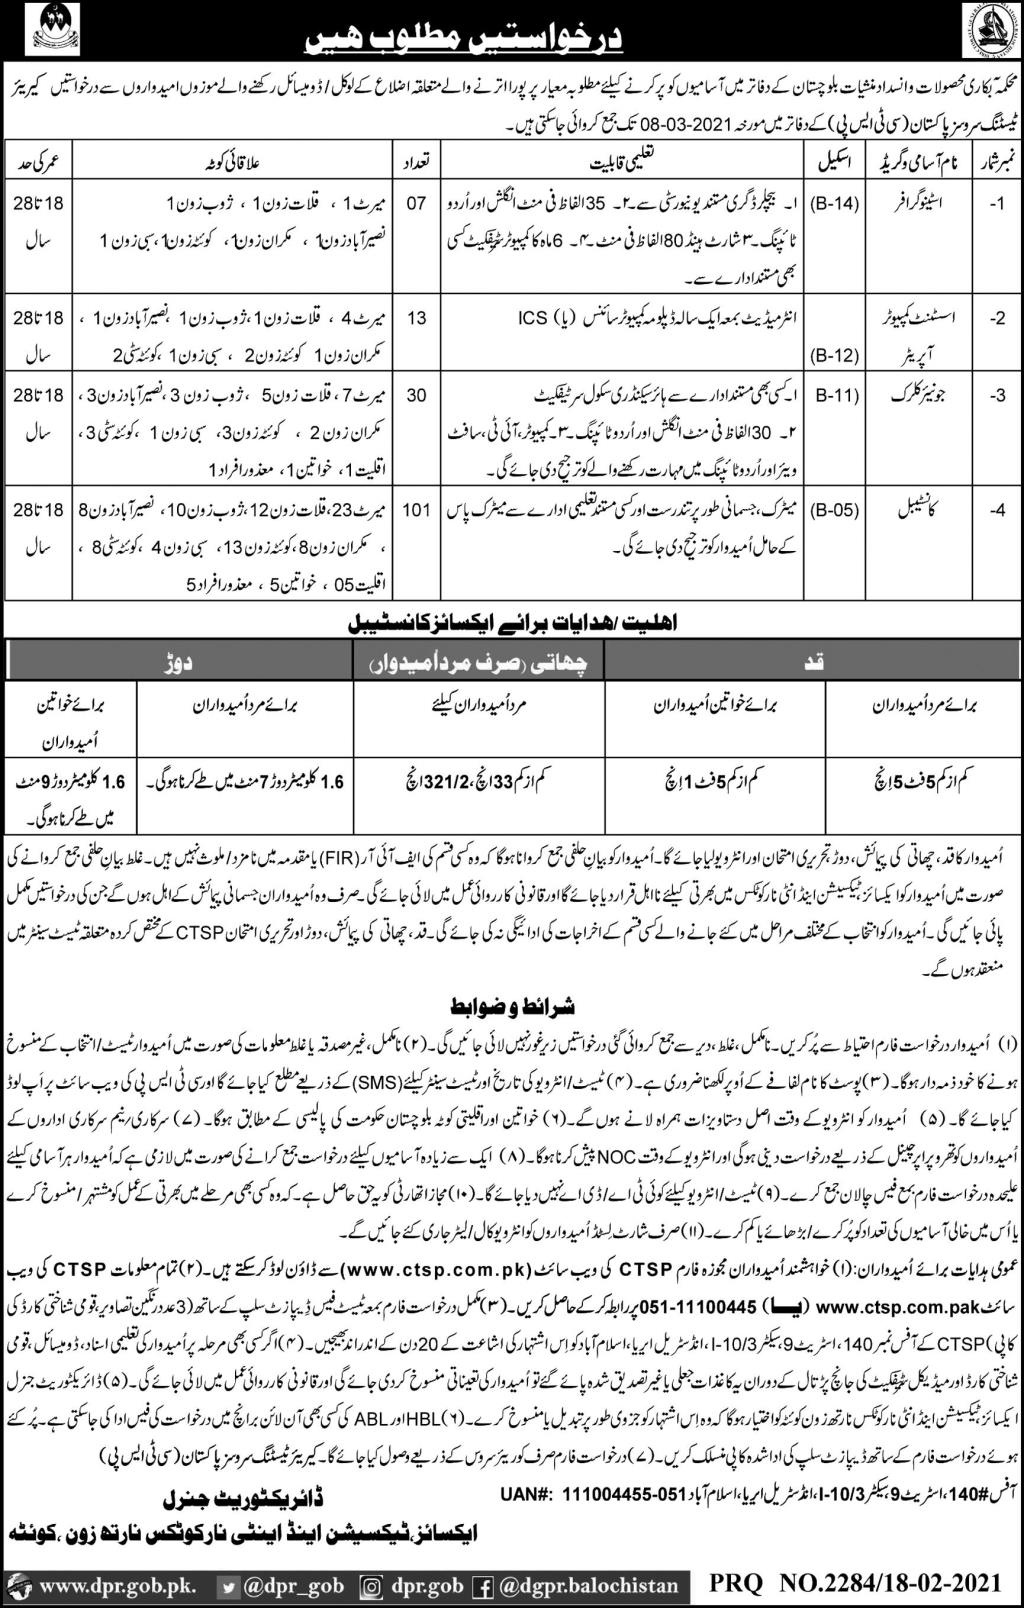 Latest Excise, Taxation & Anti-Narcotics Govt of Balochistan Jobs 2021